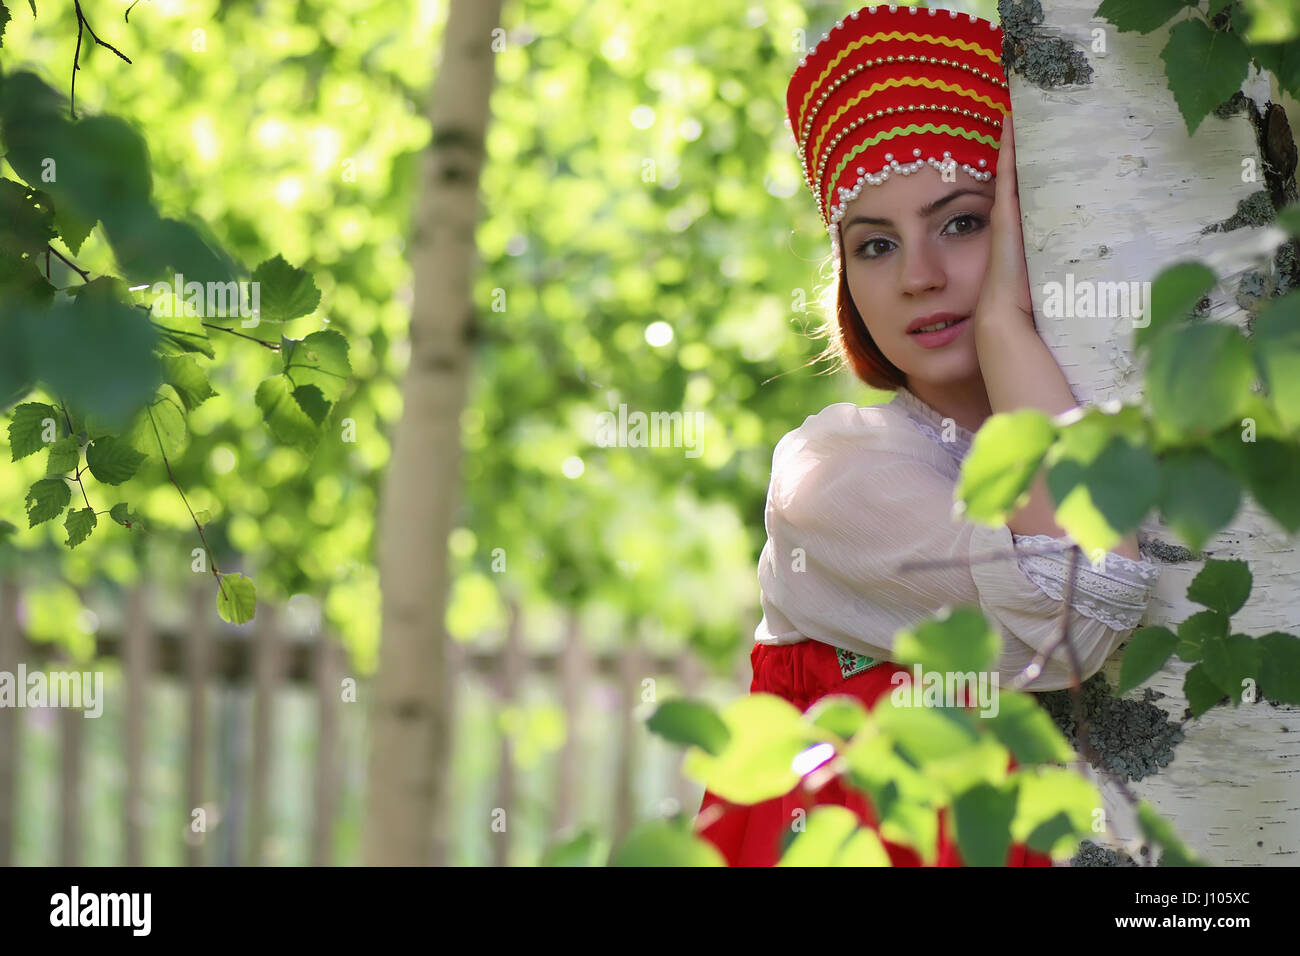 Slav in traditional dress hiding behind trees Stock Photo